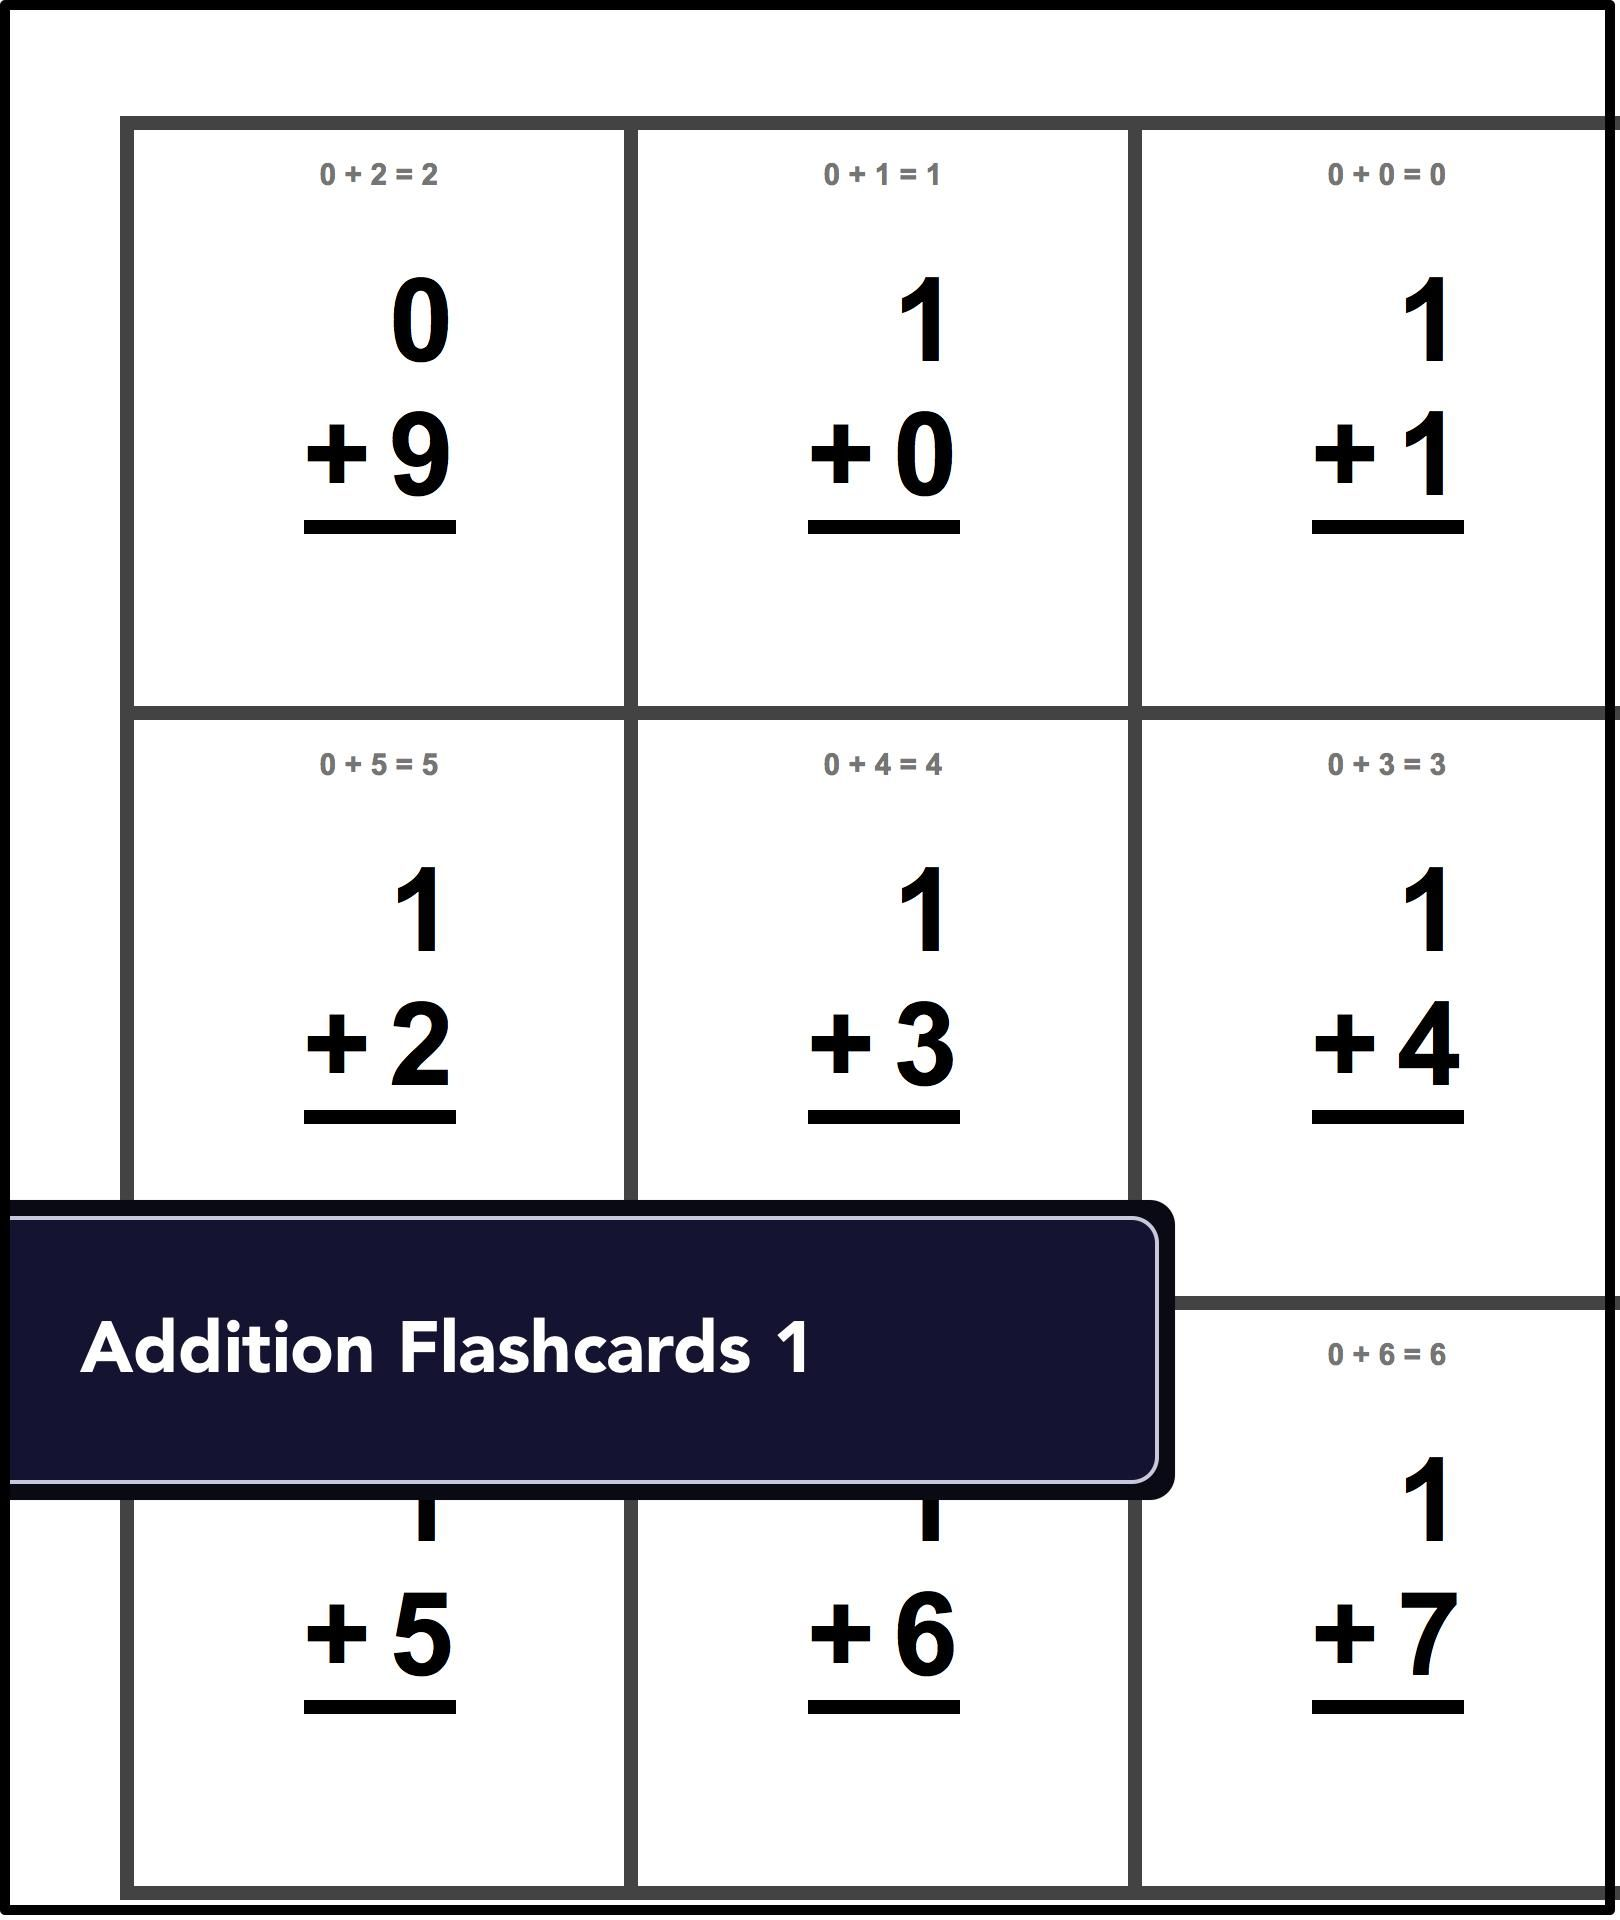 worksheet Division Flash Cards Printable basic math worksheets for little ones just starting out free printable flash cards each